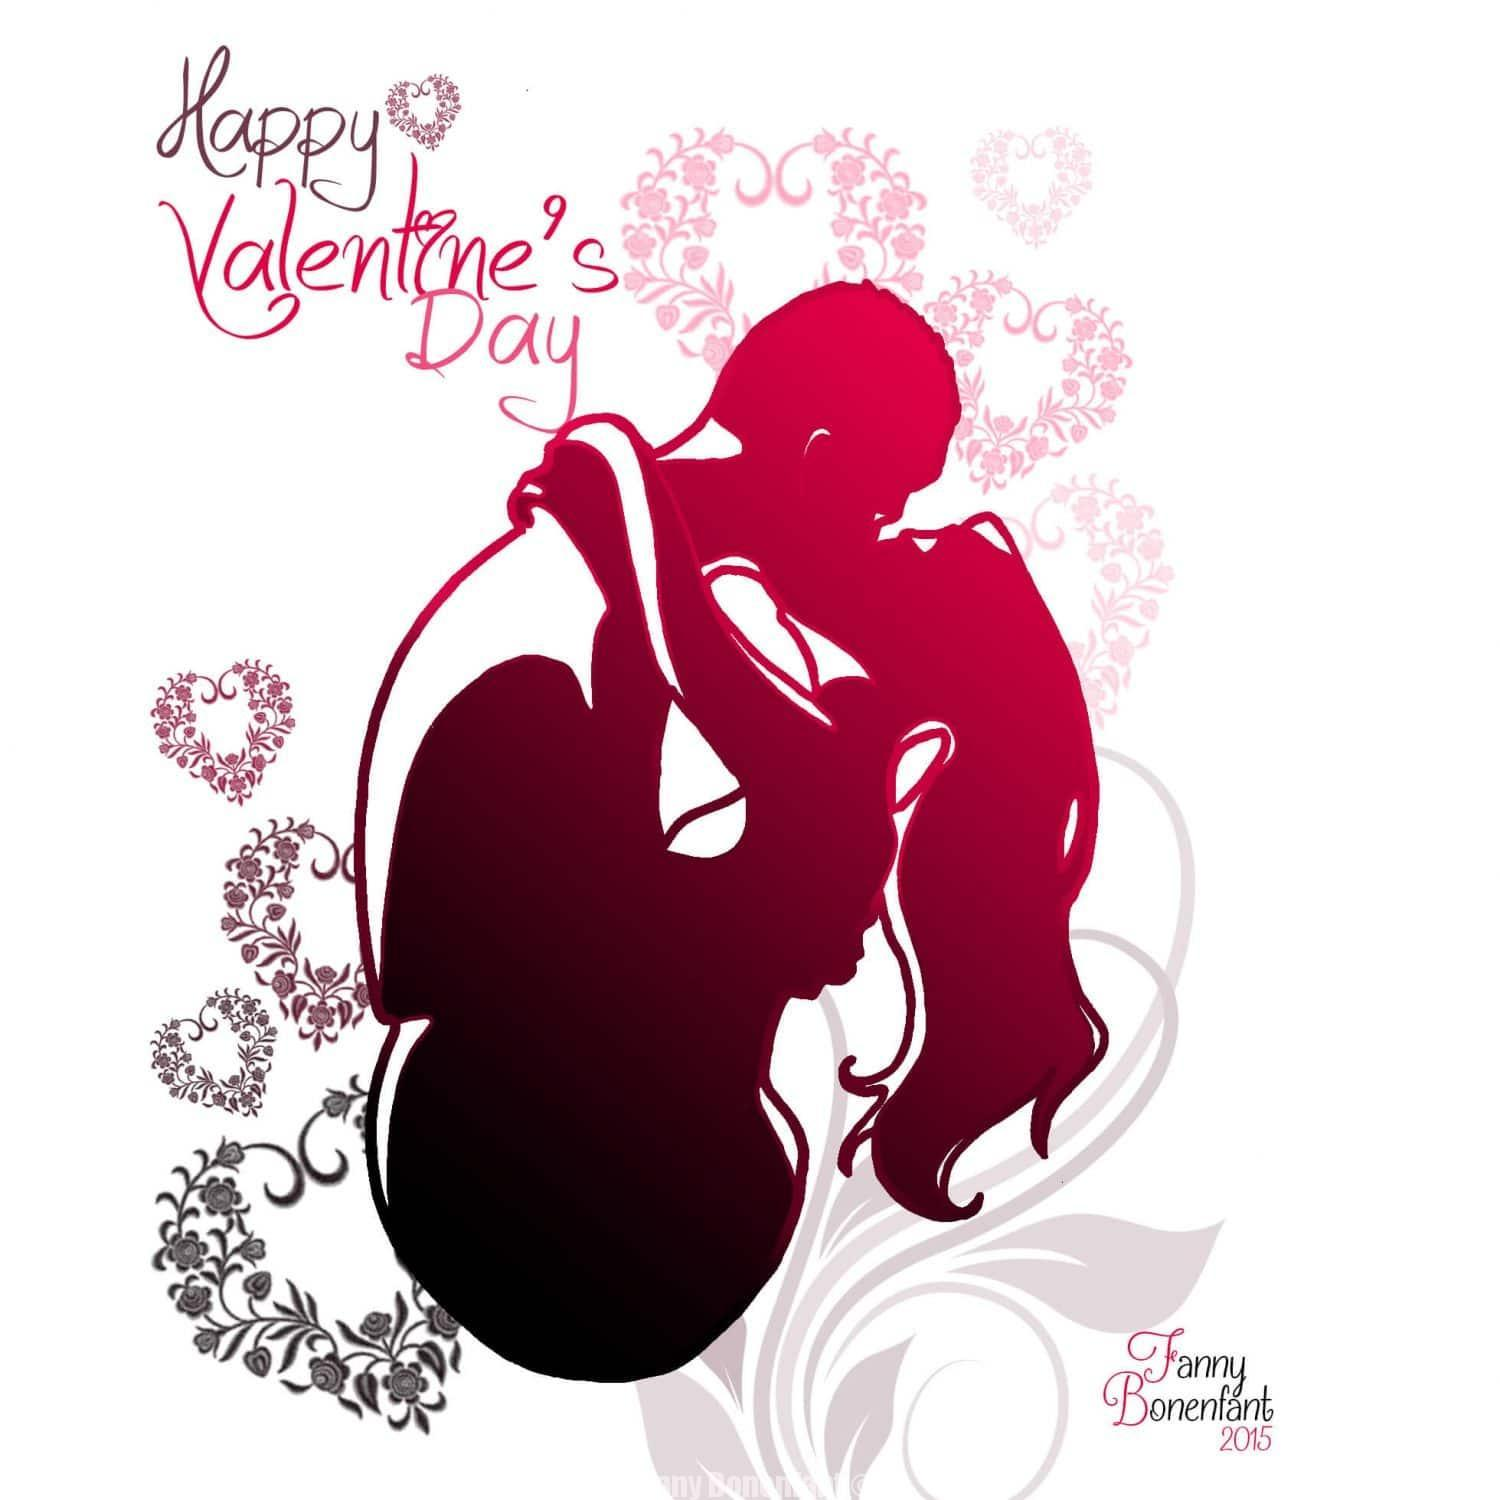 Happy Valentine's Day – Joyeuse Saint Valentin